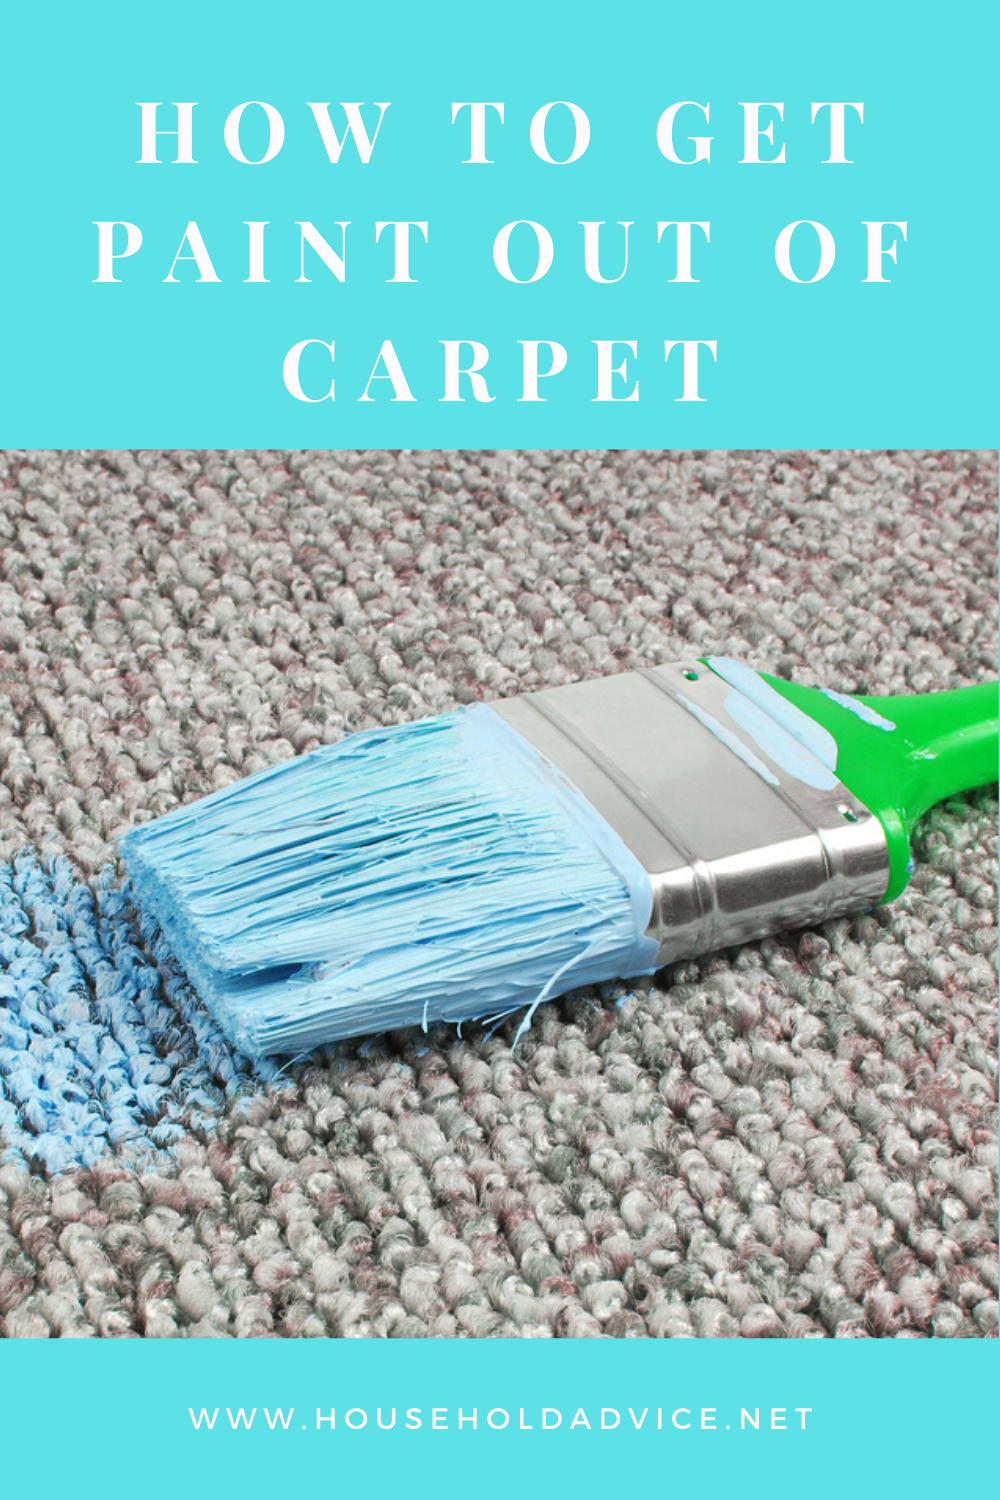 How To Get Paint Out Of Carpet Oil Acrylic Water Based In 2021 Painting Carpet Paint Remover Remove Paint From Carpet